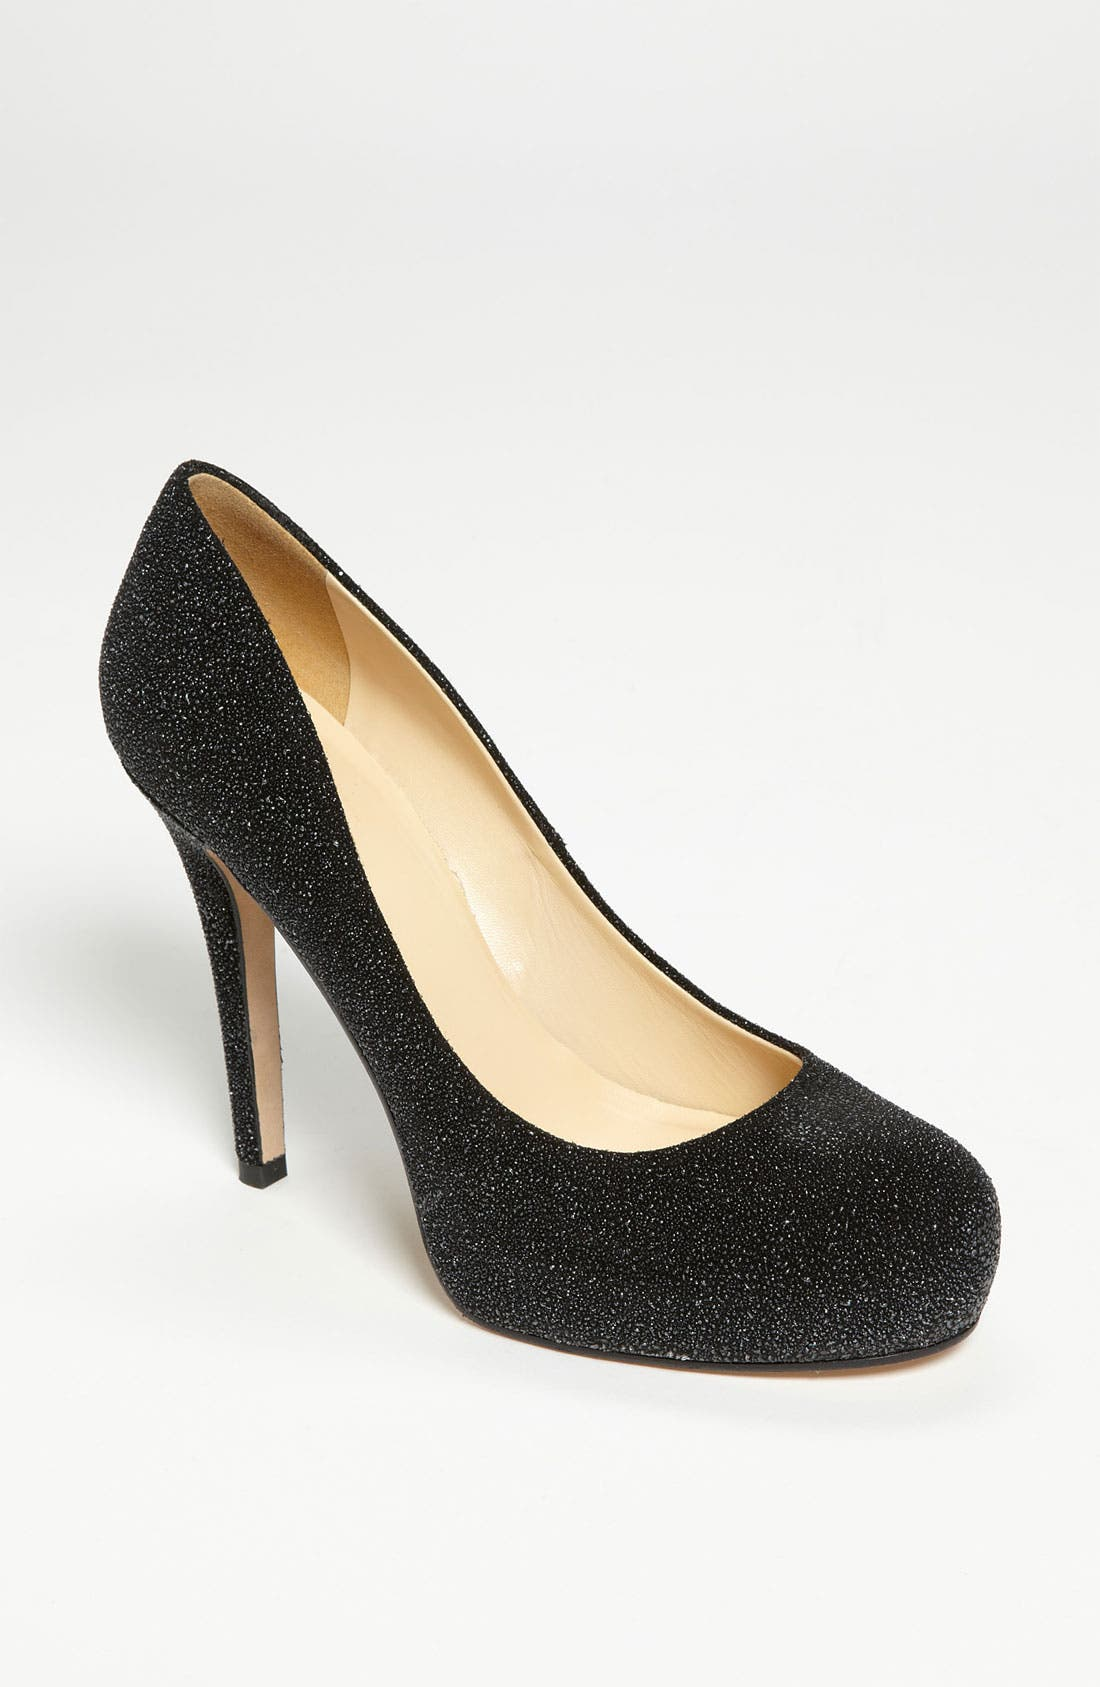 Alternate Image 1 Selected - kate spade new york 'lori' pump